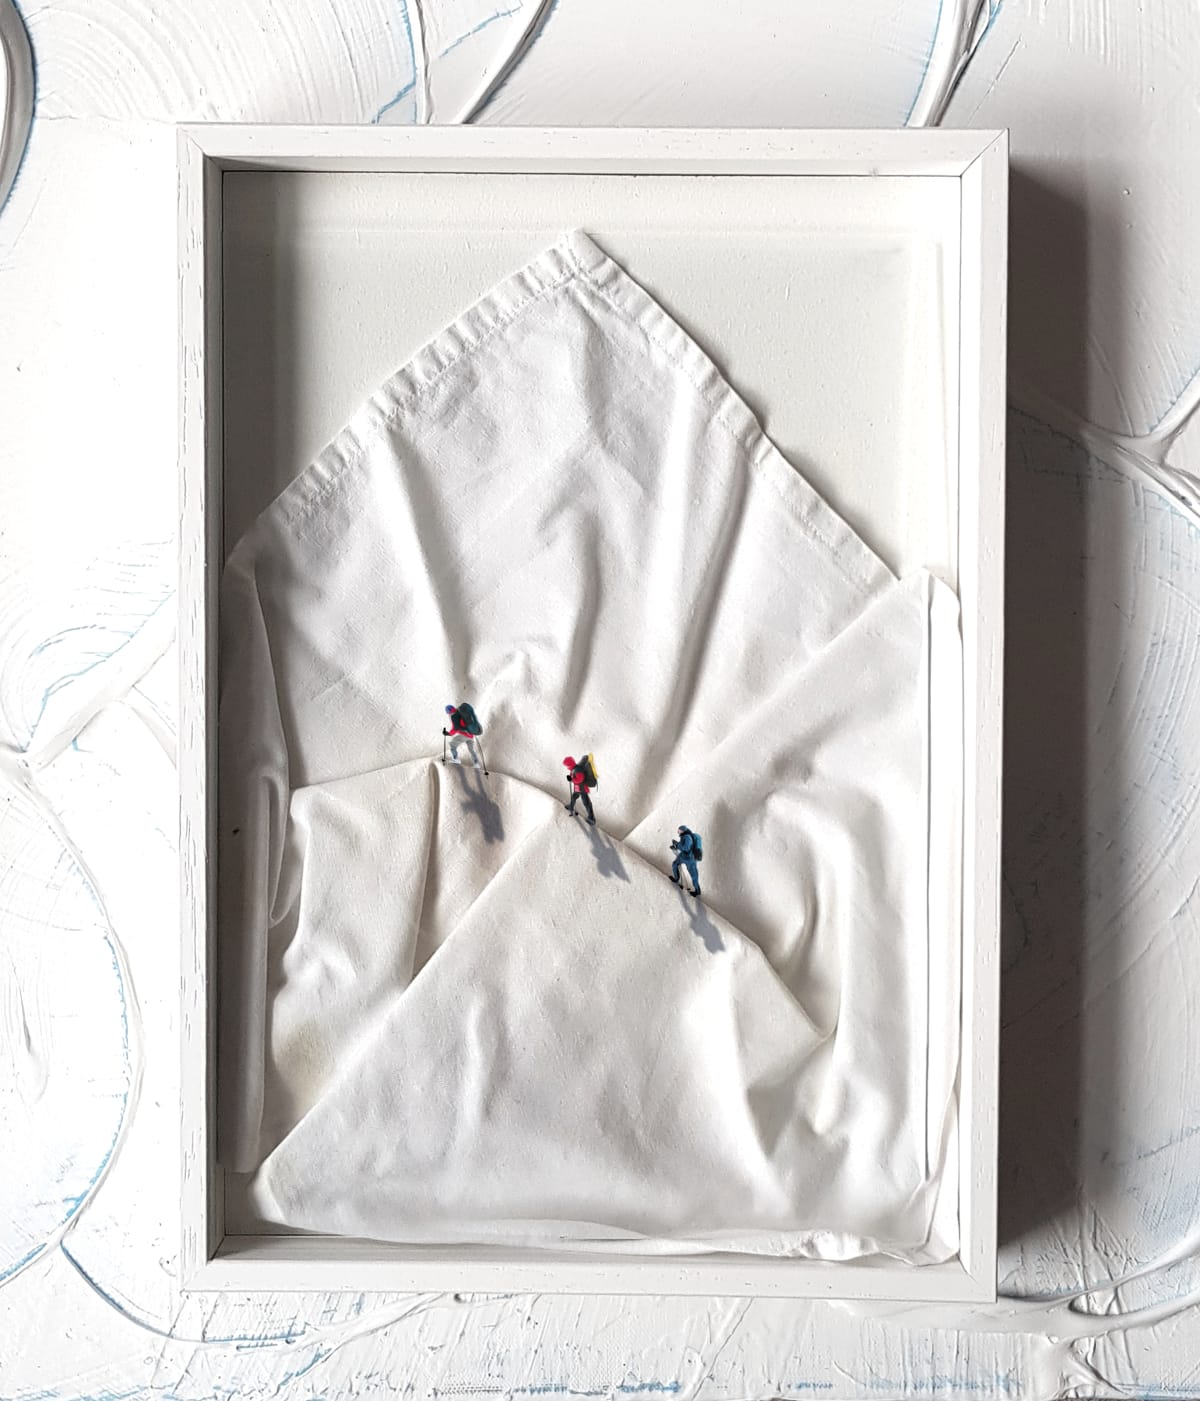 Golsa Golchini Perfect Imperfections, 2020 Mixed Media, White Sheet, Glass, Acrylics, Framed 24 x 34 cm 9 1/2 x 13 3/8 in